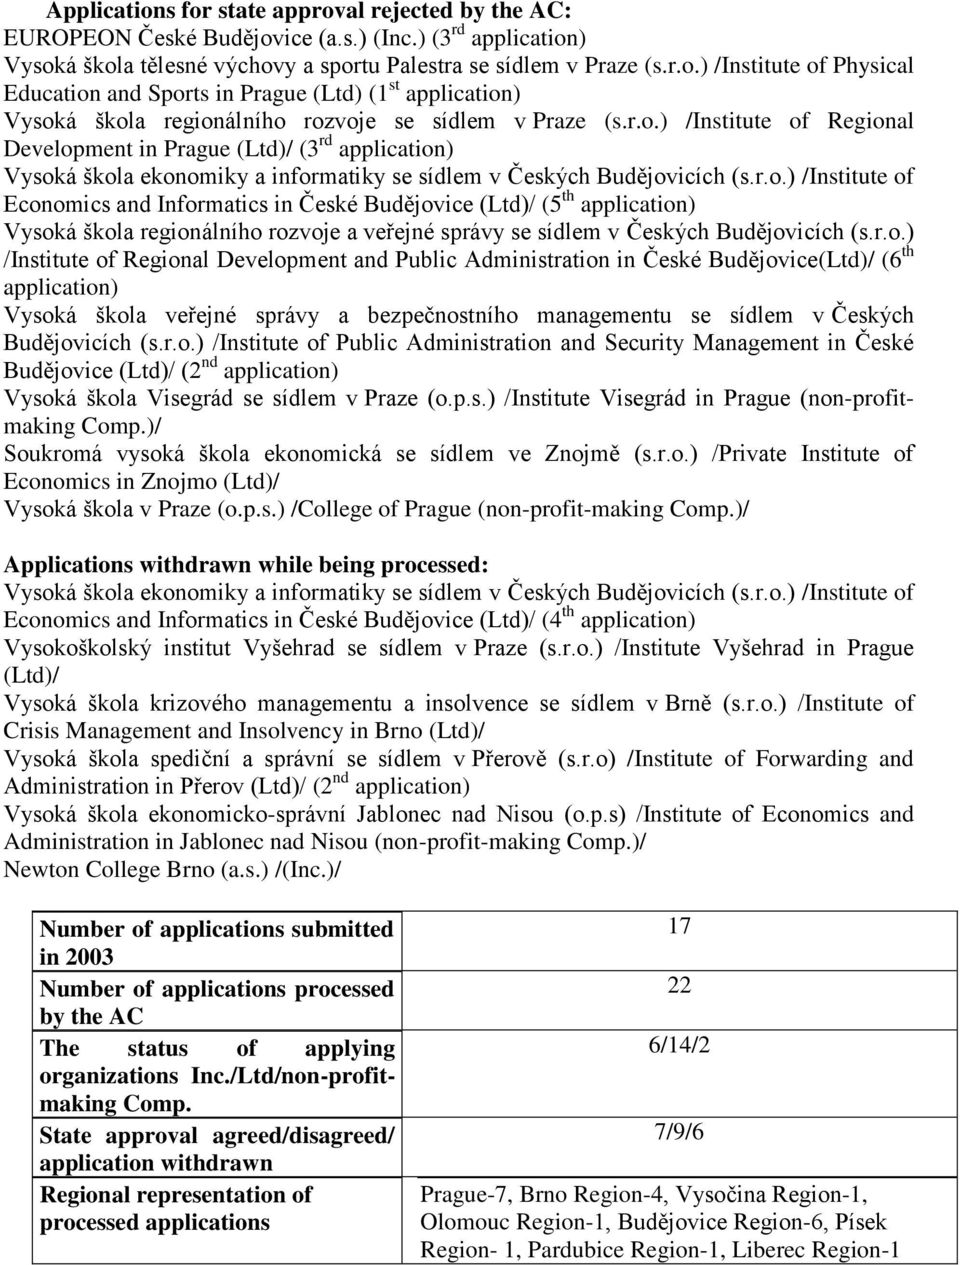 r.o.) /Institute of Regional Development and Public Administration in České Budějovice(Ltd)/ (6 th application) Vysoká škola veřejné správy a bezpečnostního managementu se sídlem v Českých